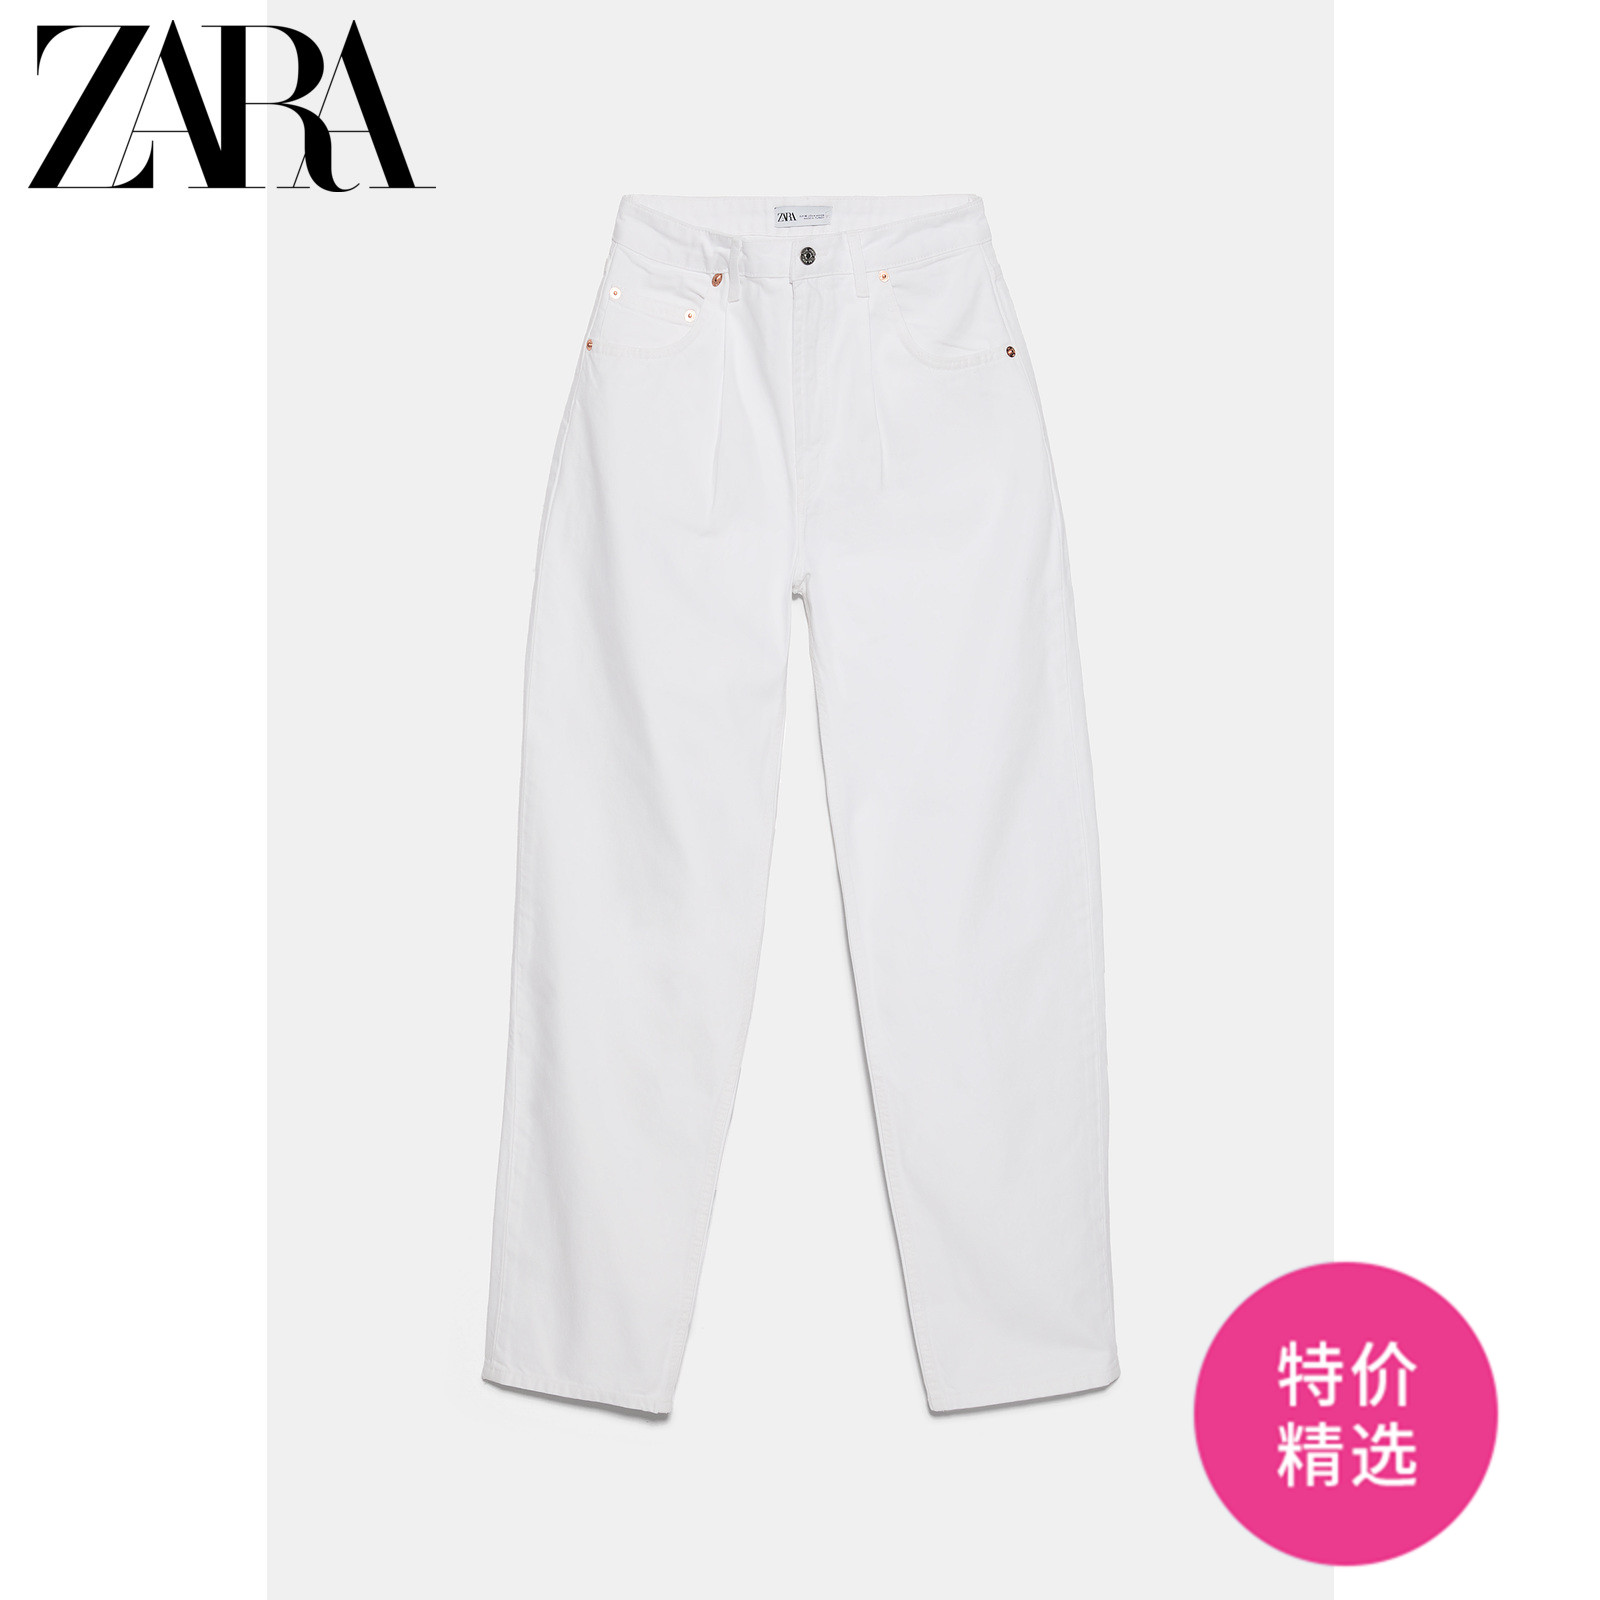 Zara new TRF women's high waist washed jeans 06688049250